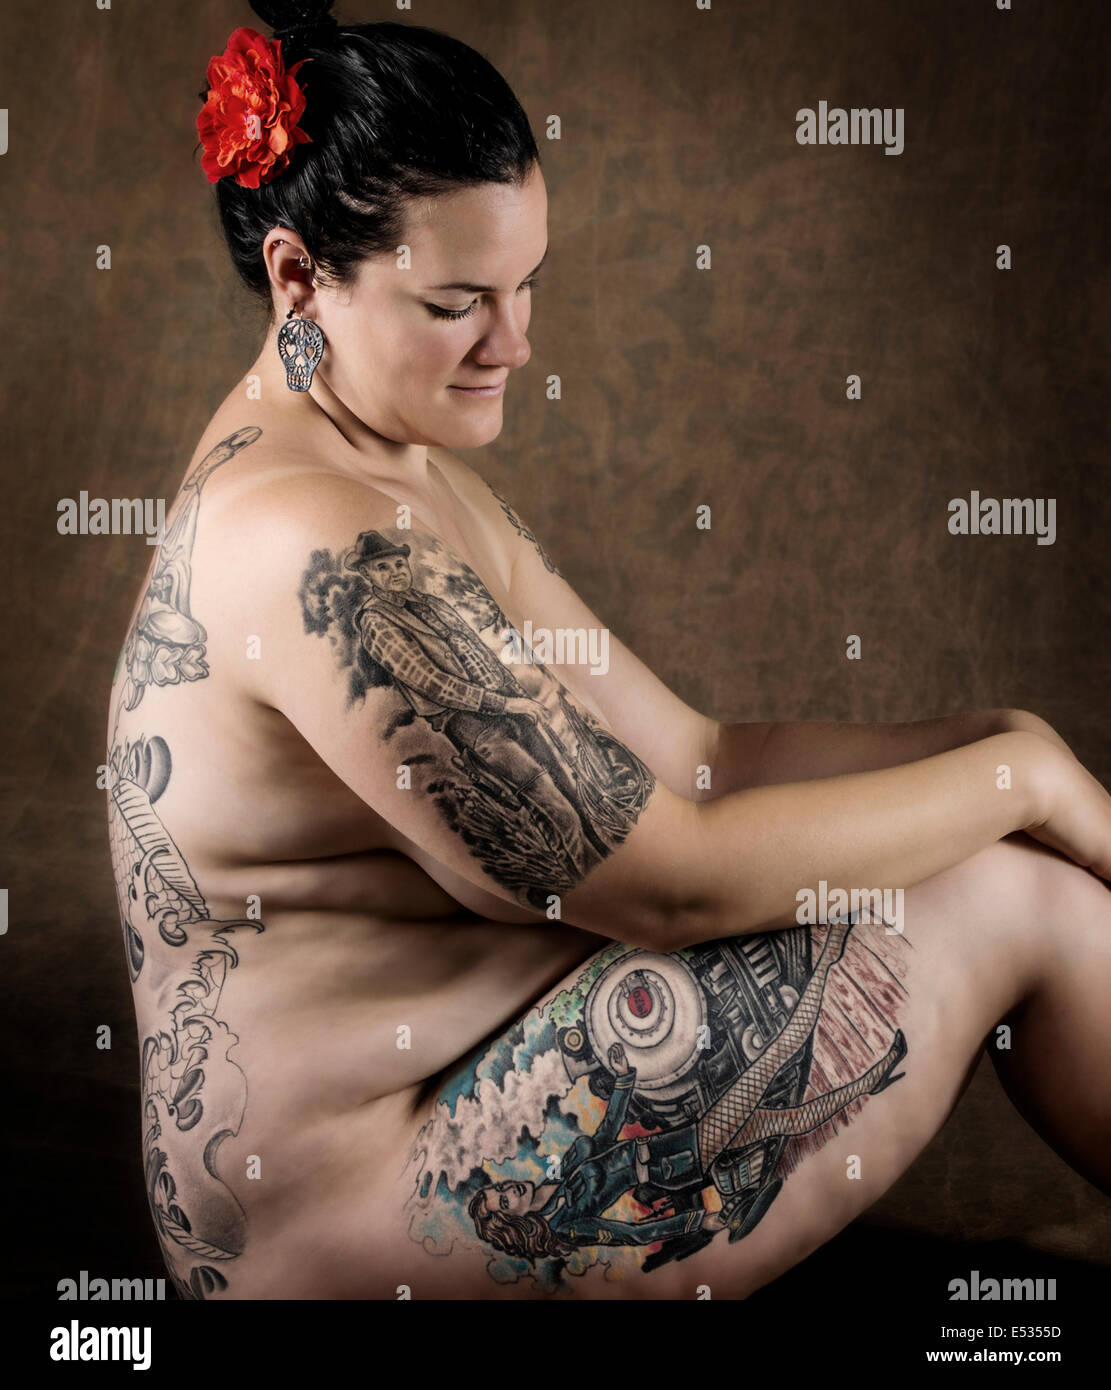 Tattoo Nude Woman 41